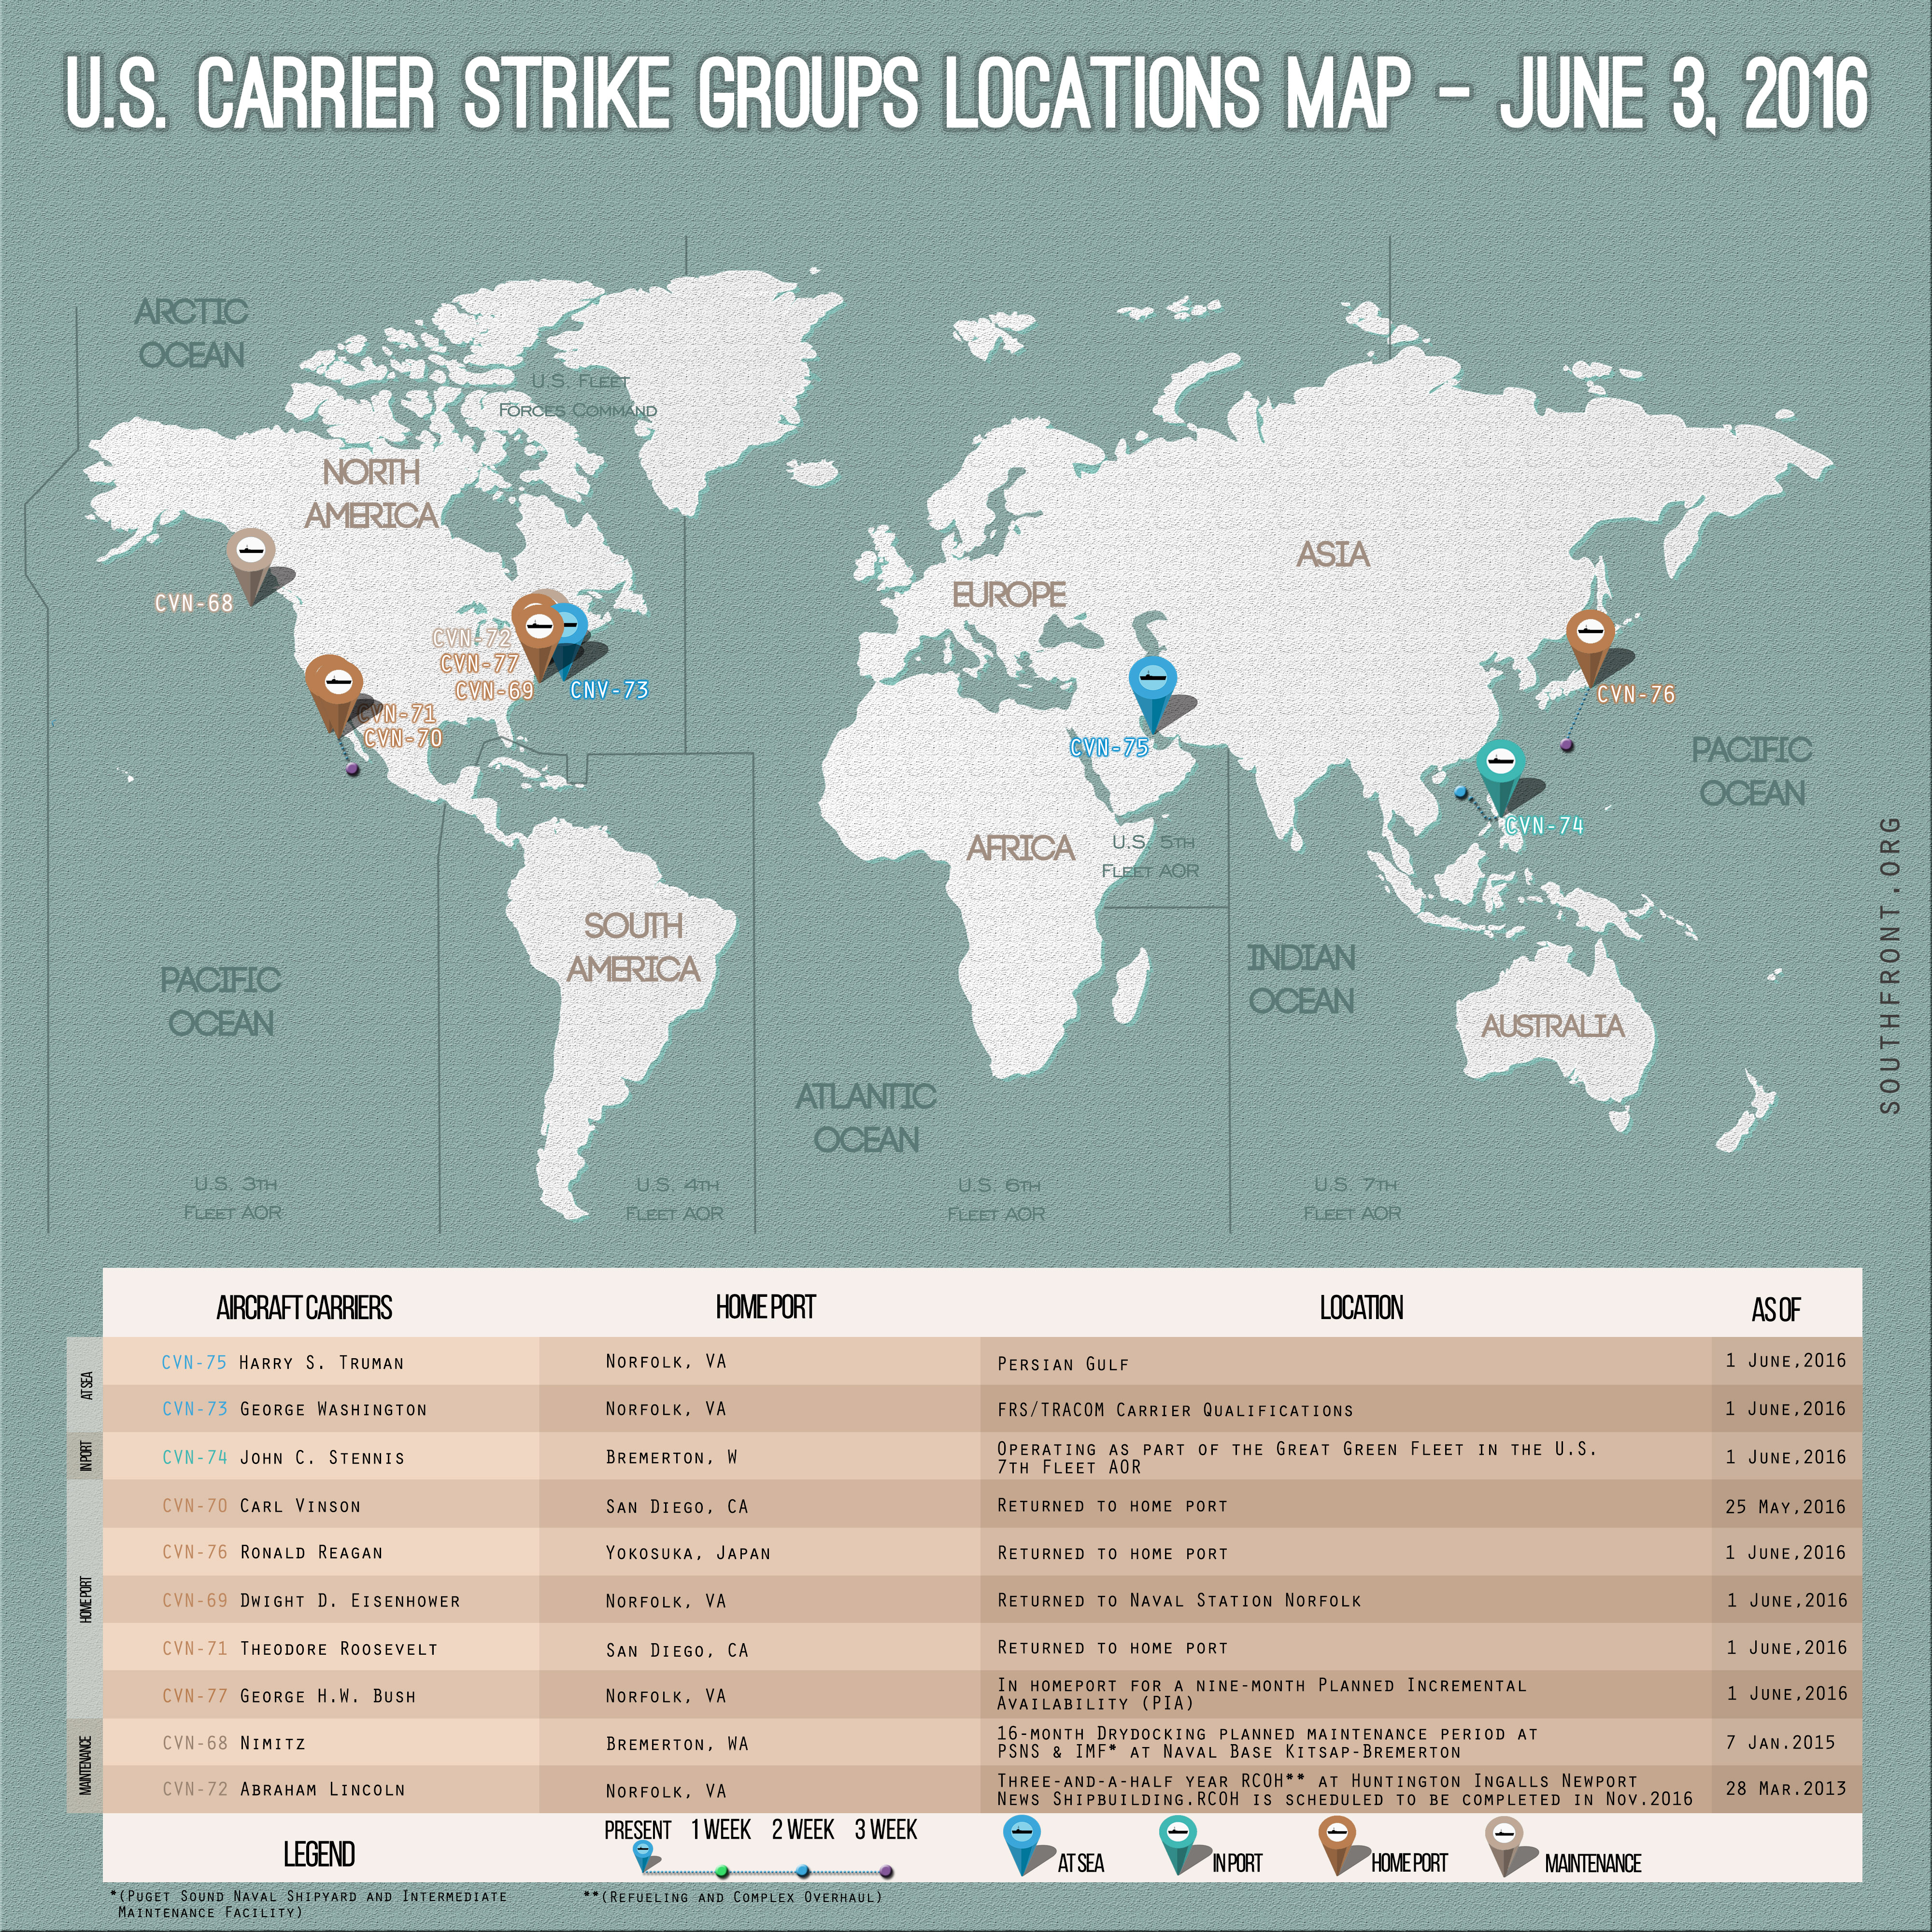 U.S. Carrier Strike Groups Locations Map – June 3, 2016